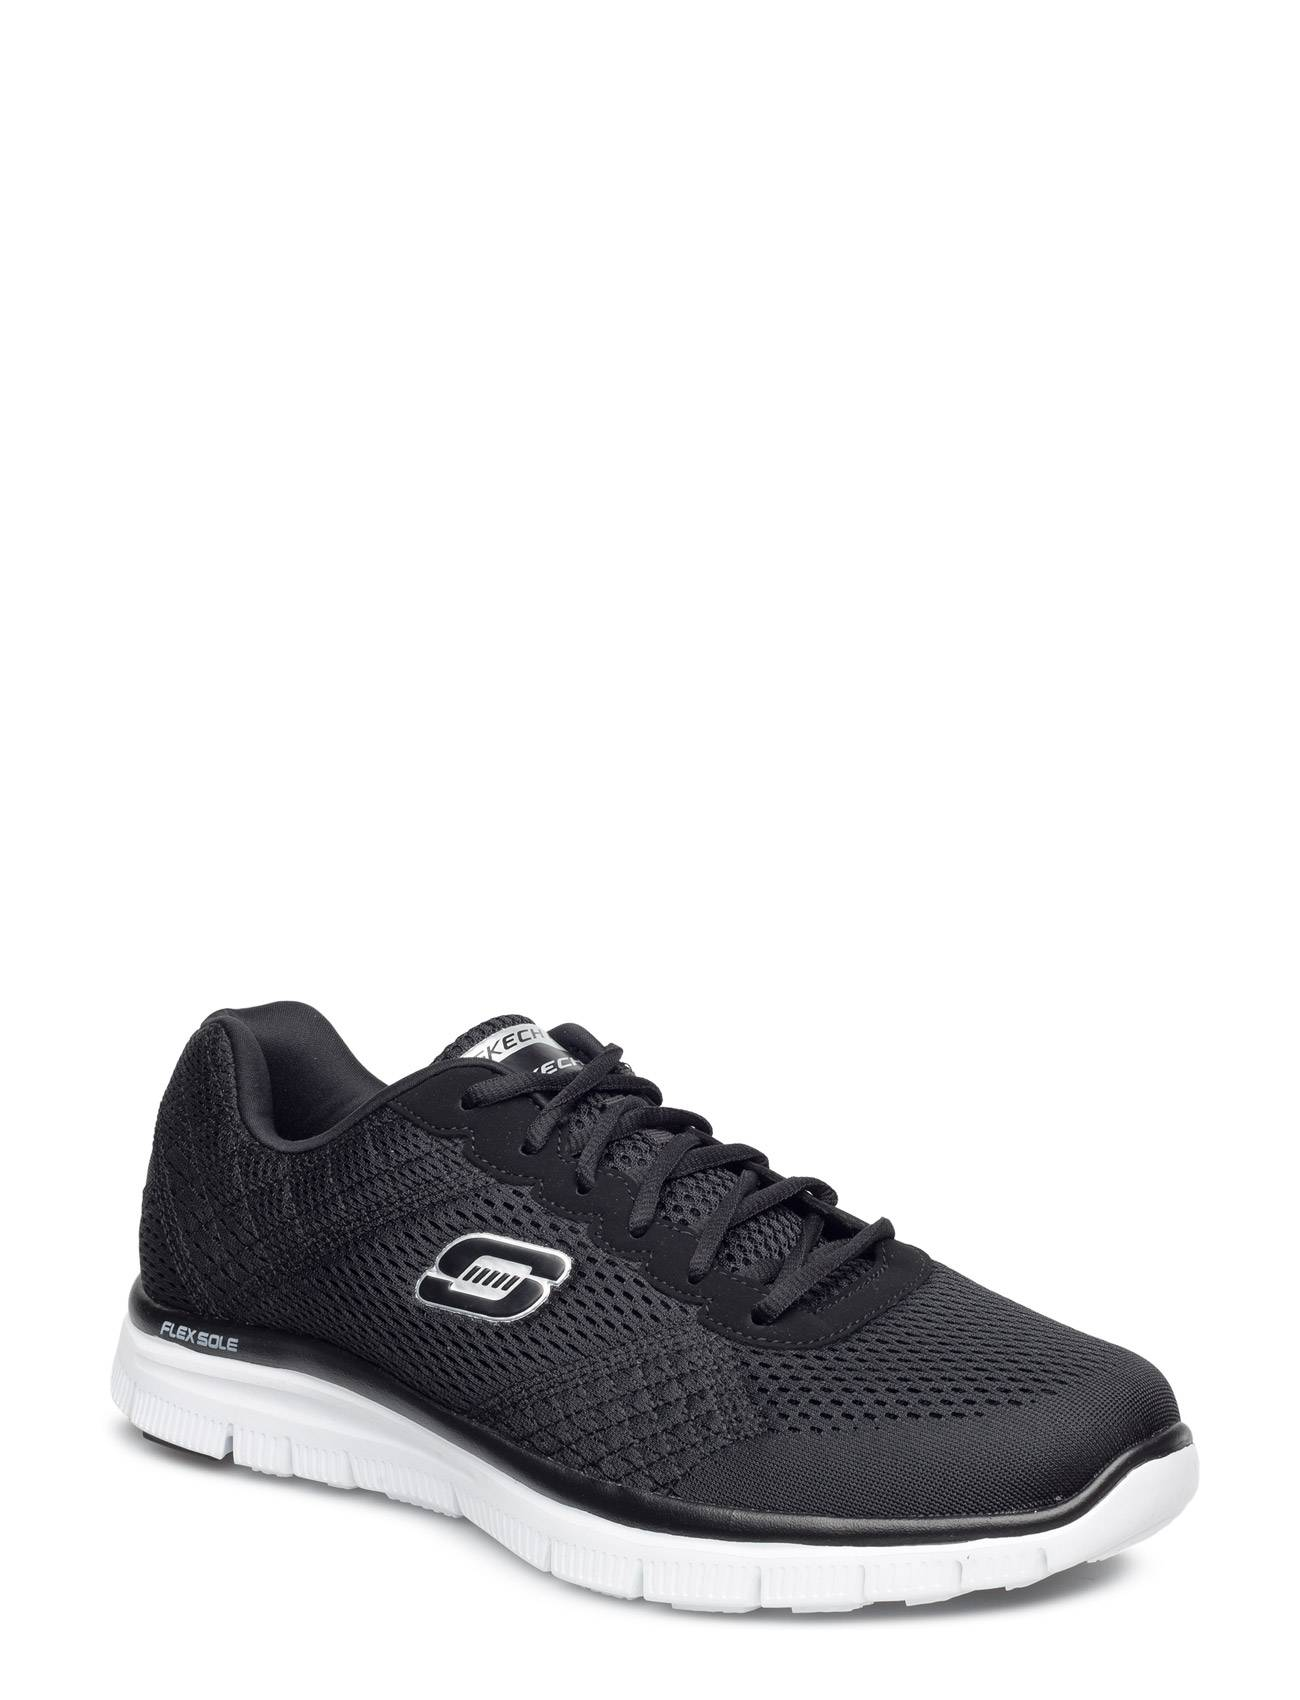 Skechers Mens Flex Advantage - Covert Activity Training